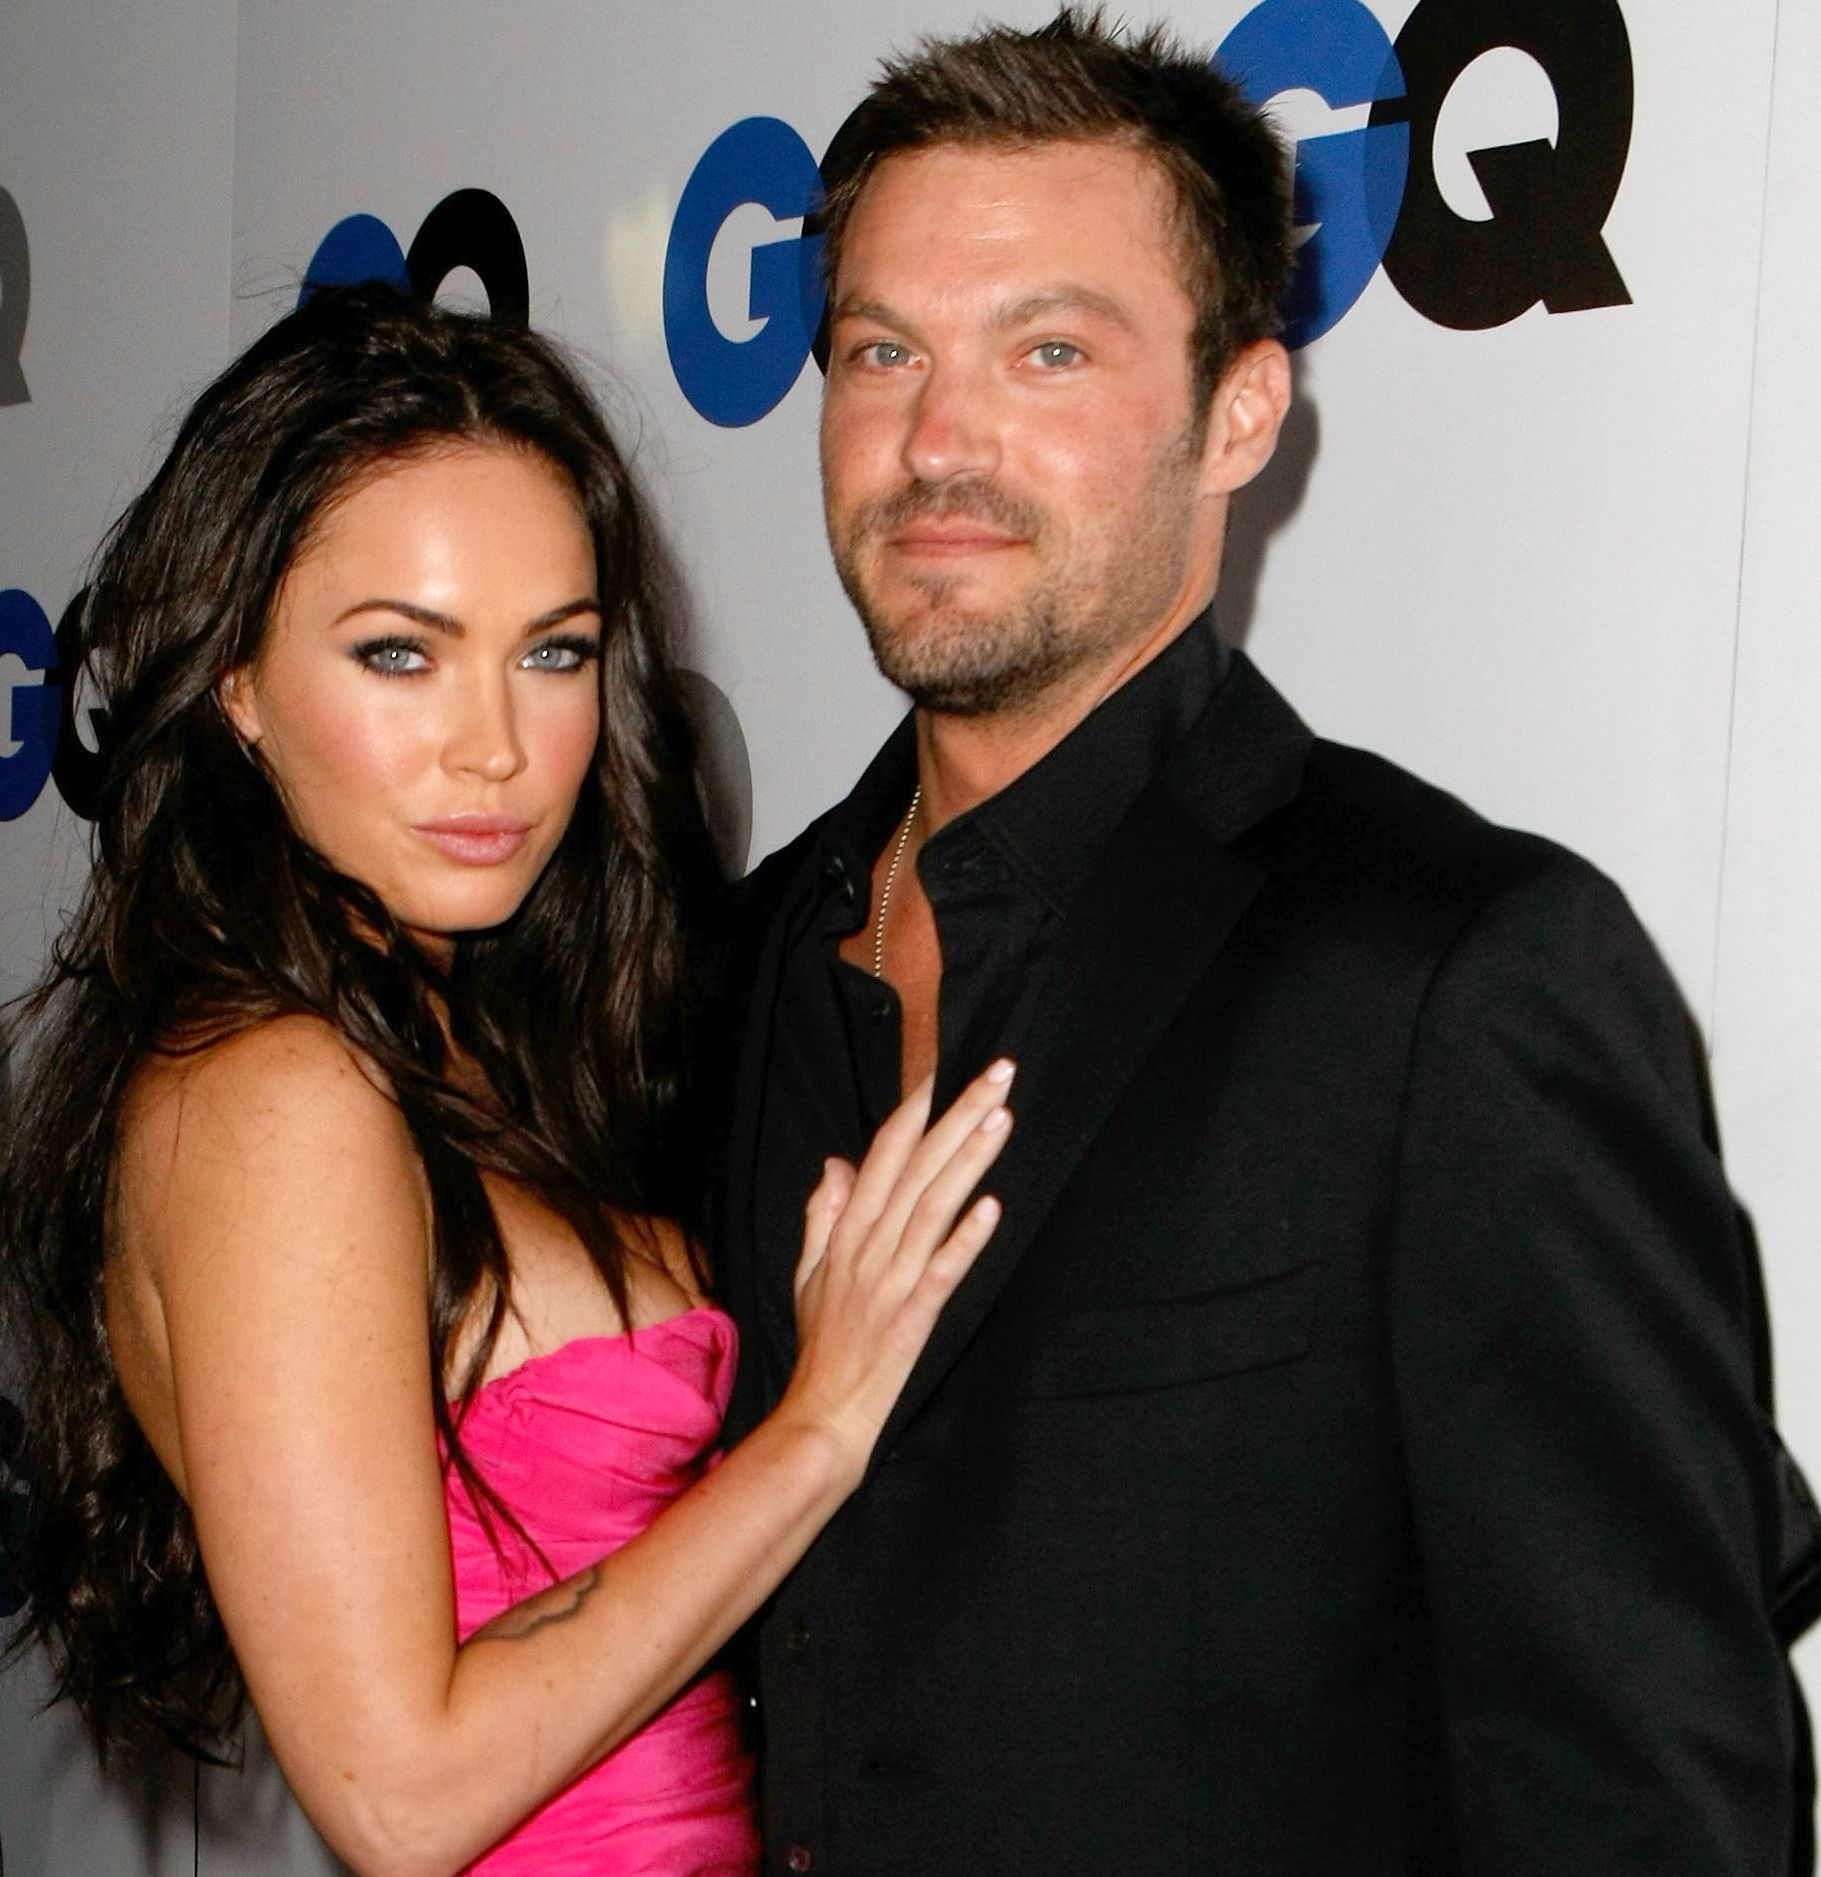 Megan Fox and Brian Austin Green 2008